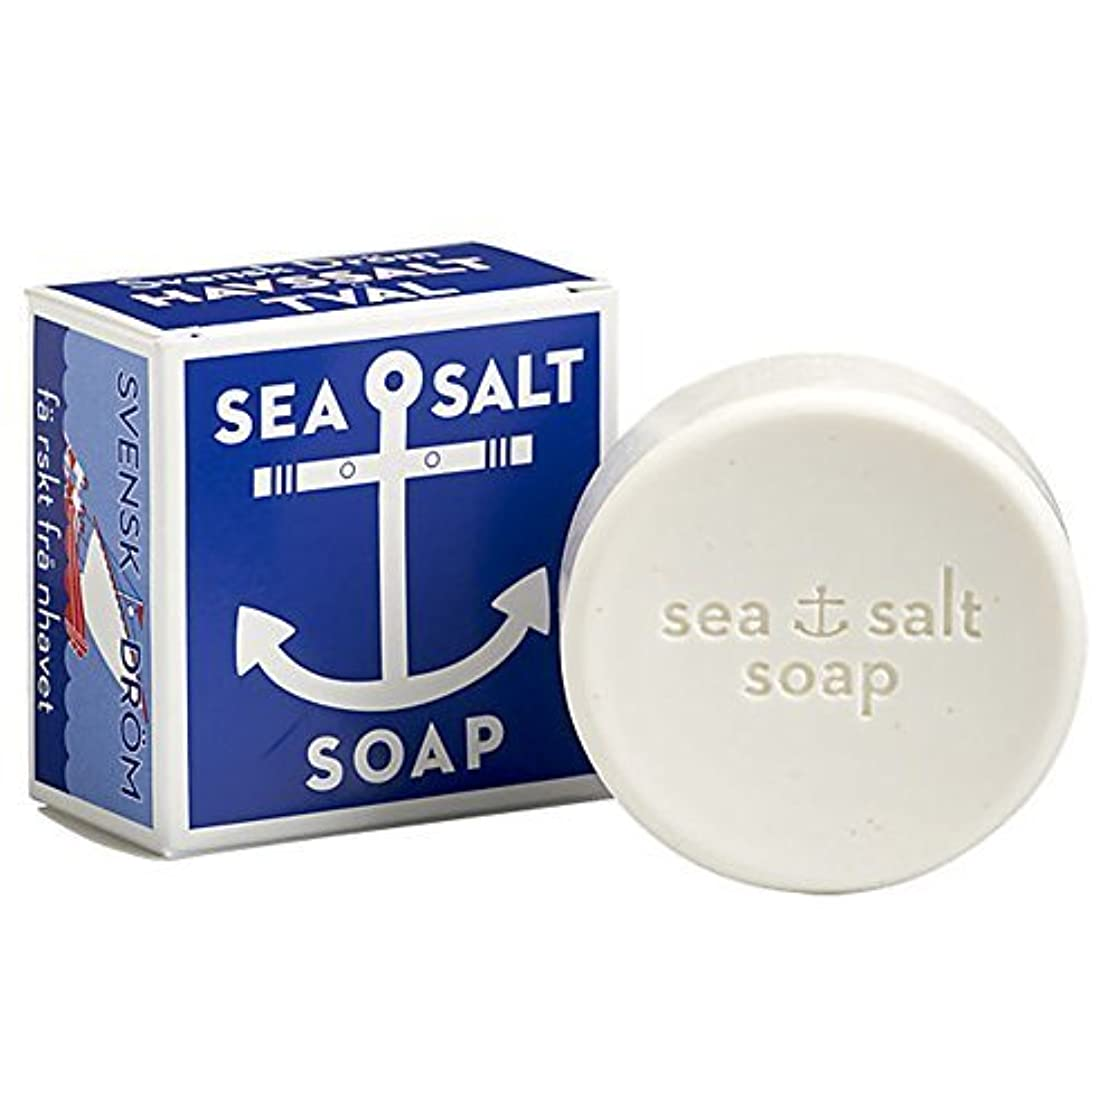 脱獄教える頬骨Swedish Dream Sea Salt Invigorating Bath Soap - One 4.3 oz Bar by Swedish Dream [並行輸入品]